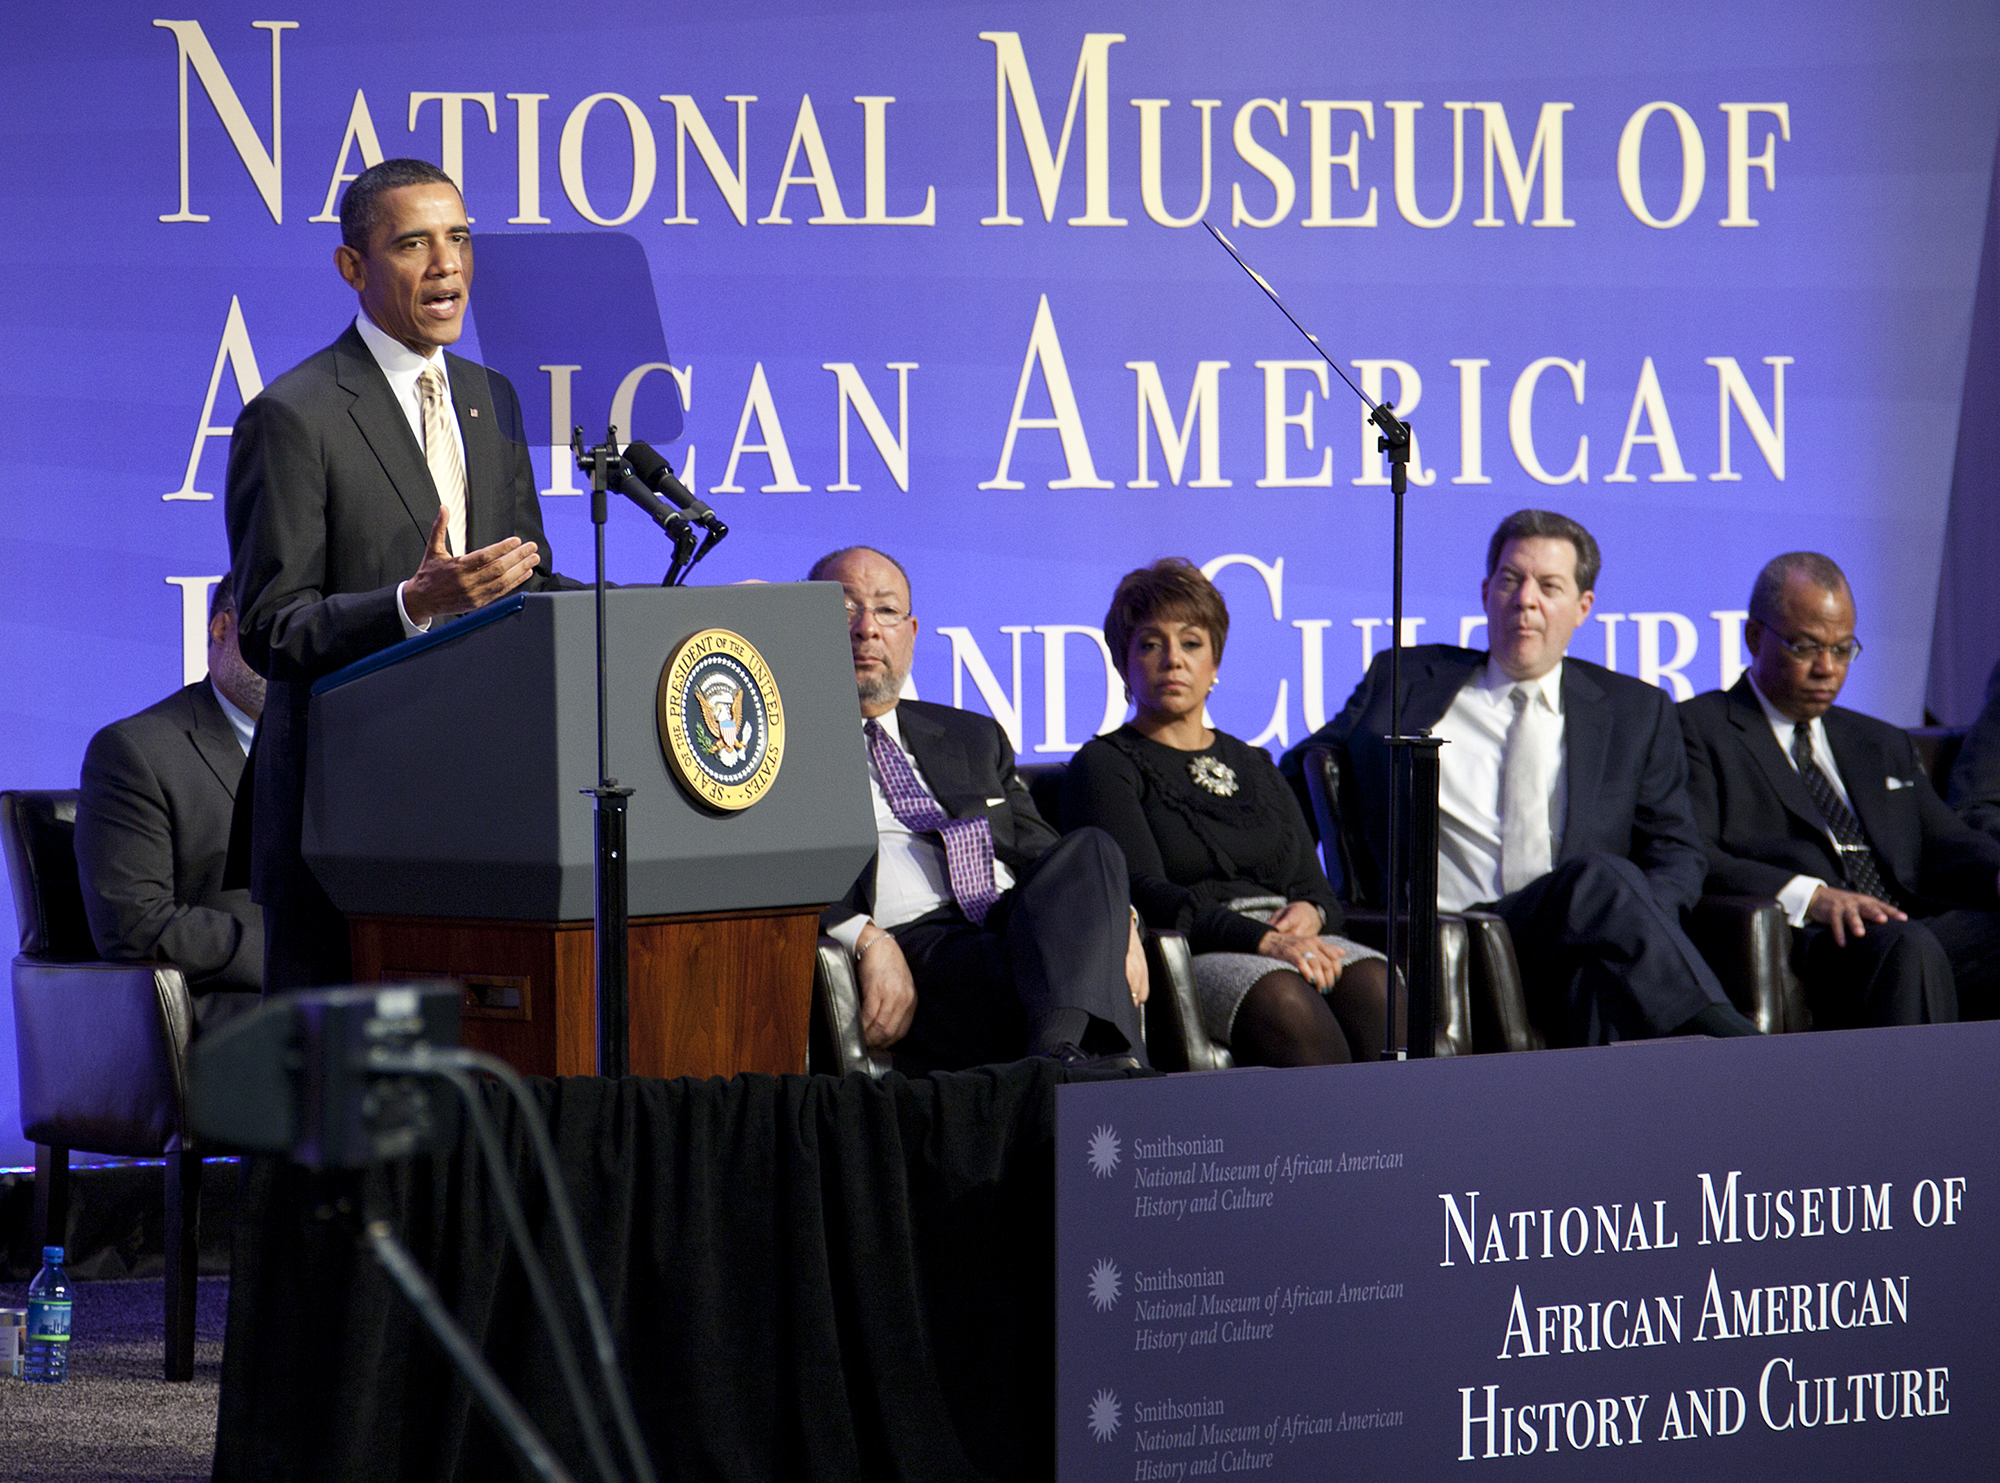 President Barack Obama speaks at podium in front of National Museum of African American History and Culture